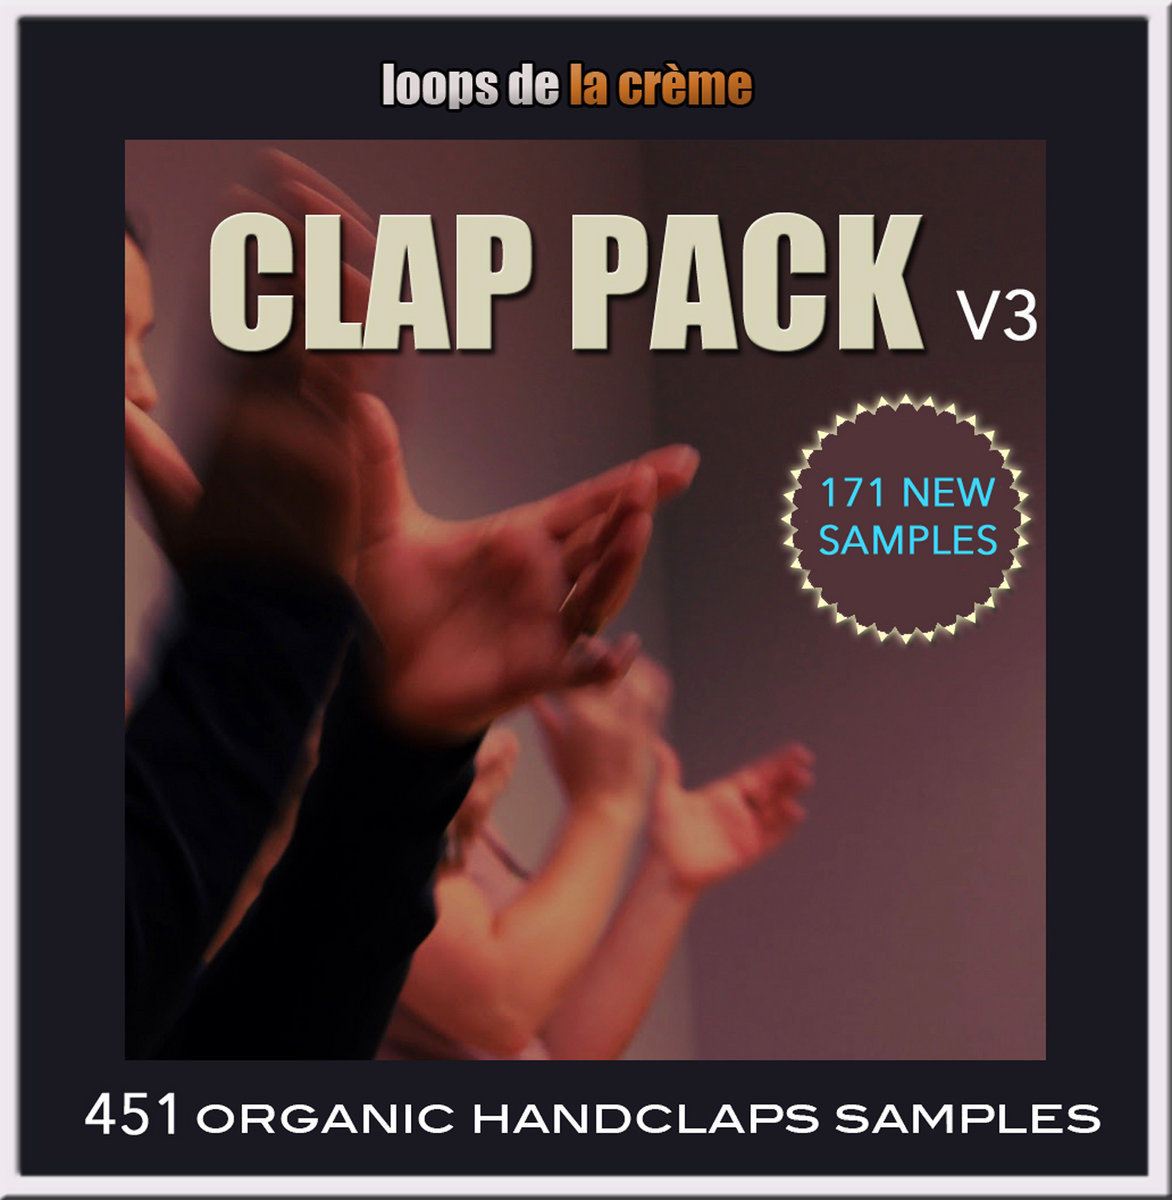 Clap Pack Loops De La Creme Music i can make hands clap 100% free! clap pack loops de la creme